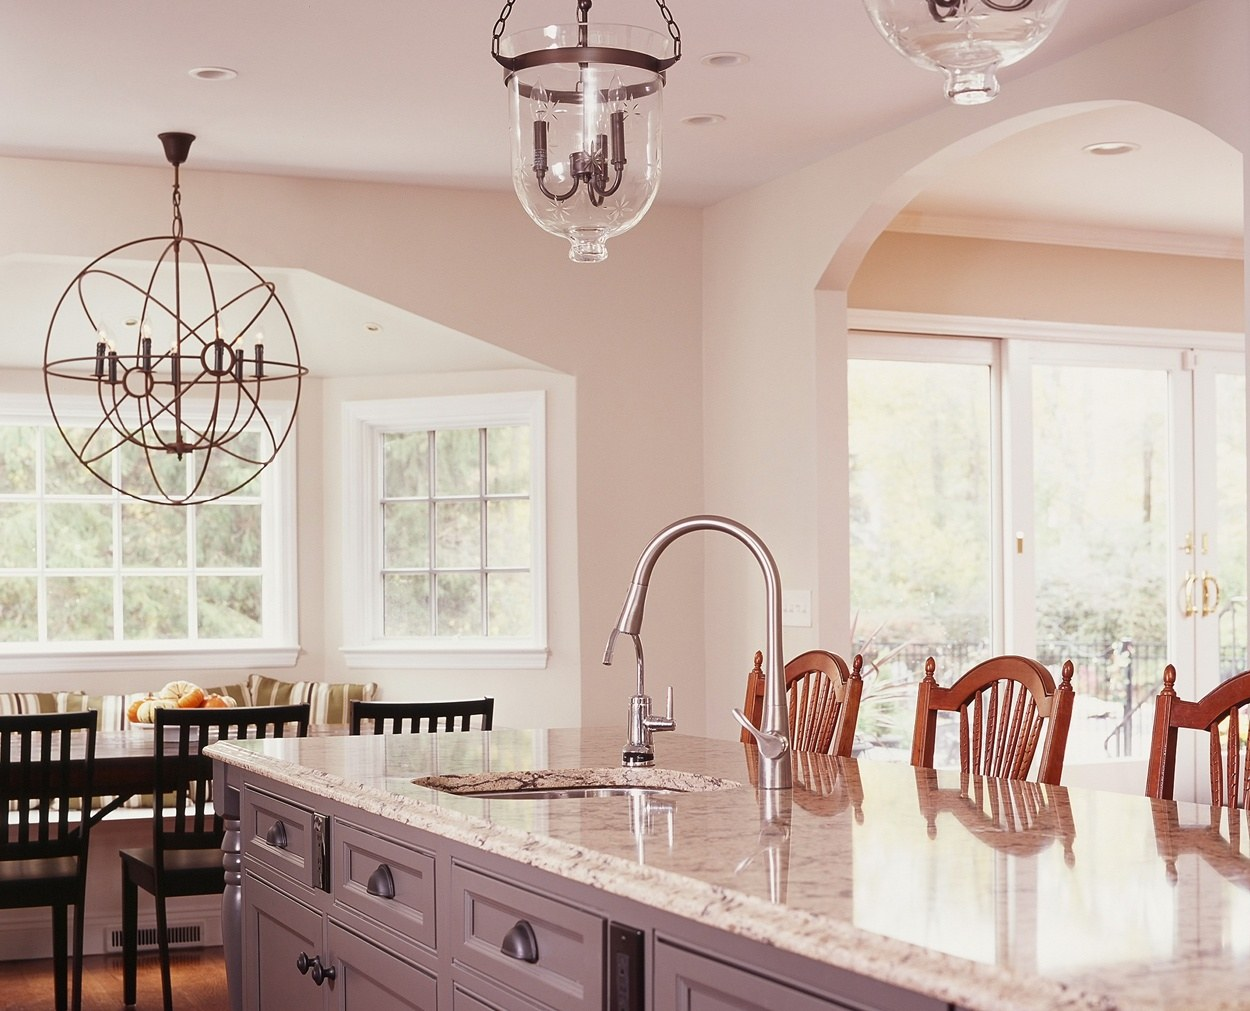 Center island features a prep sink and granite top.